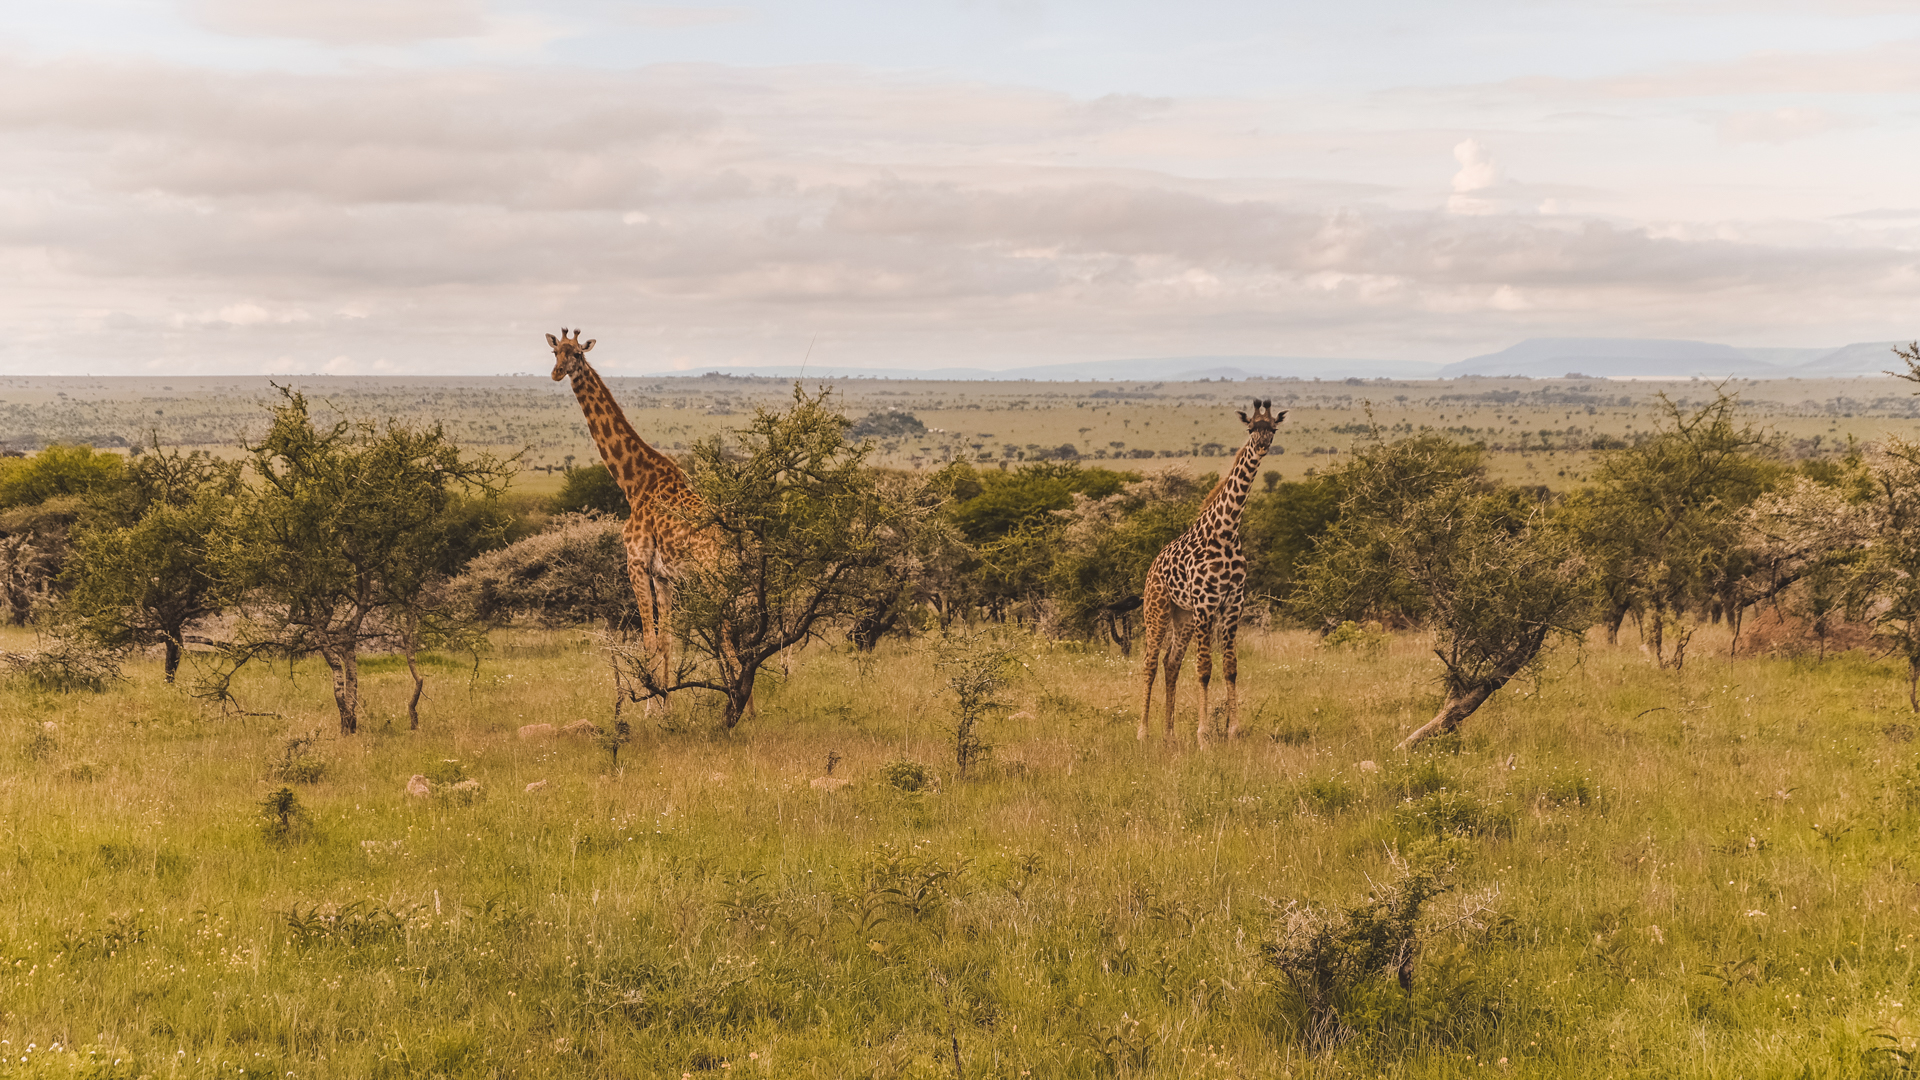 Giraffes on the lookout for acacia in the Serengeti National Park, Tanzania